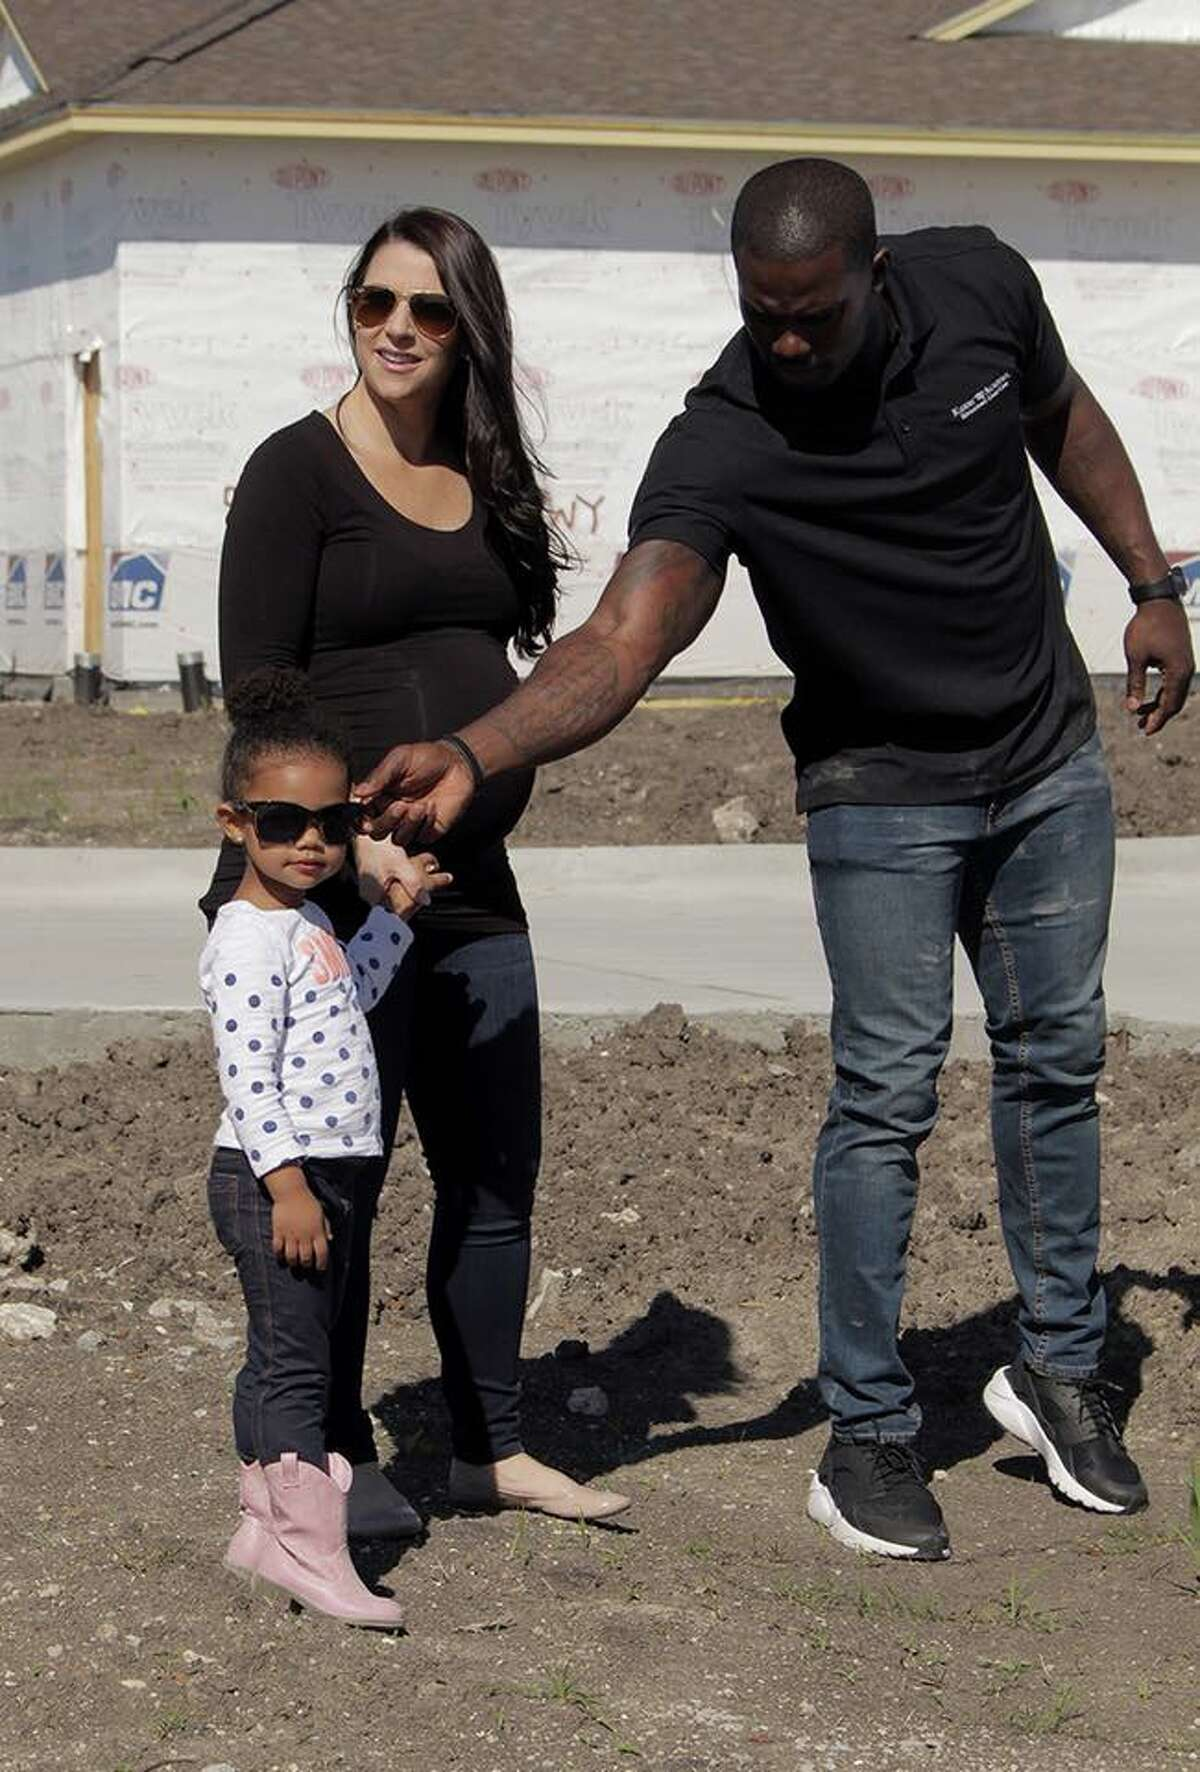 James Ihedigbo and his wife, Brittany Ihedigbo, with their 3-year-old daughter, Grace. Grace will attend the center once it opens in June.